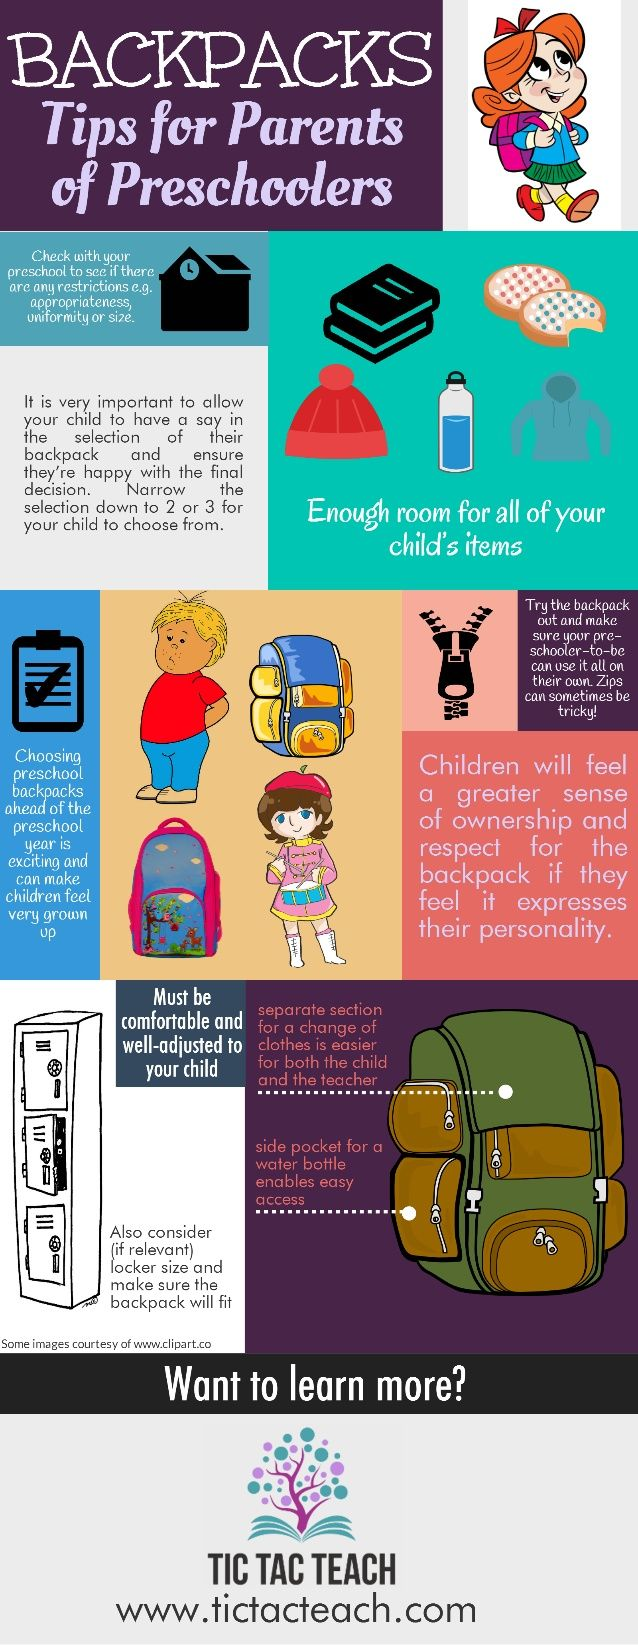 BACKPACKS  Tips for Parents of Preschoolers                     It is very important to allow  your child to have Cl say i...